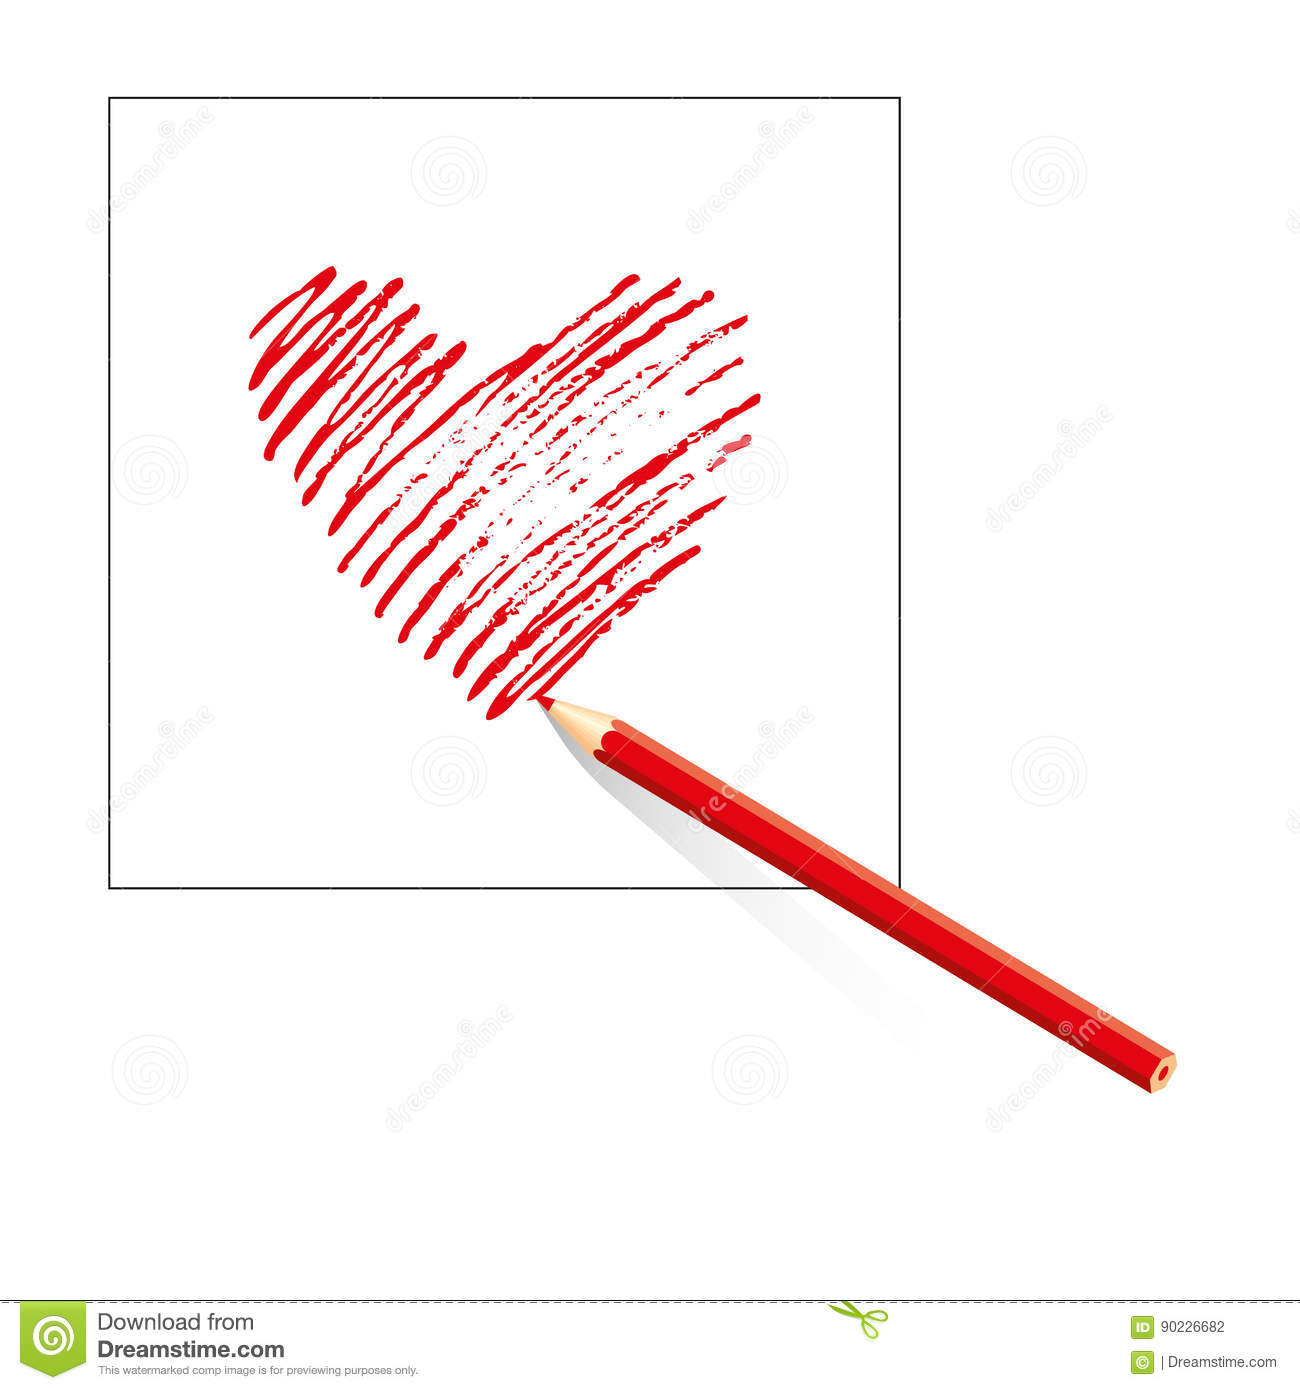 isolated red heart drawn by colored pencil on sheet of white paper